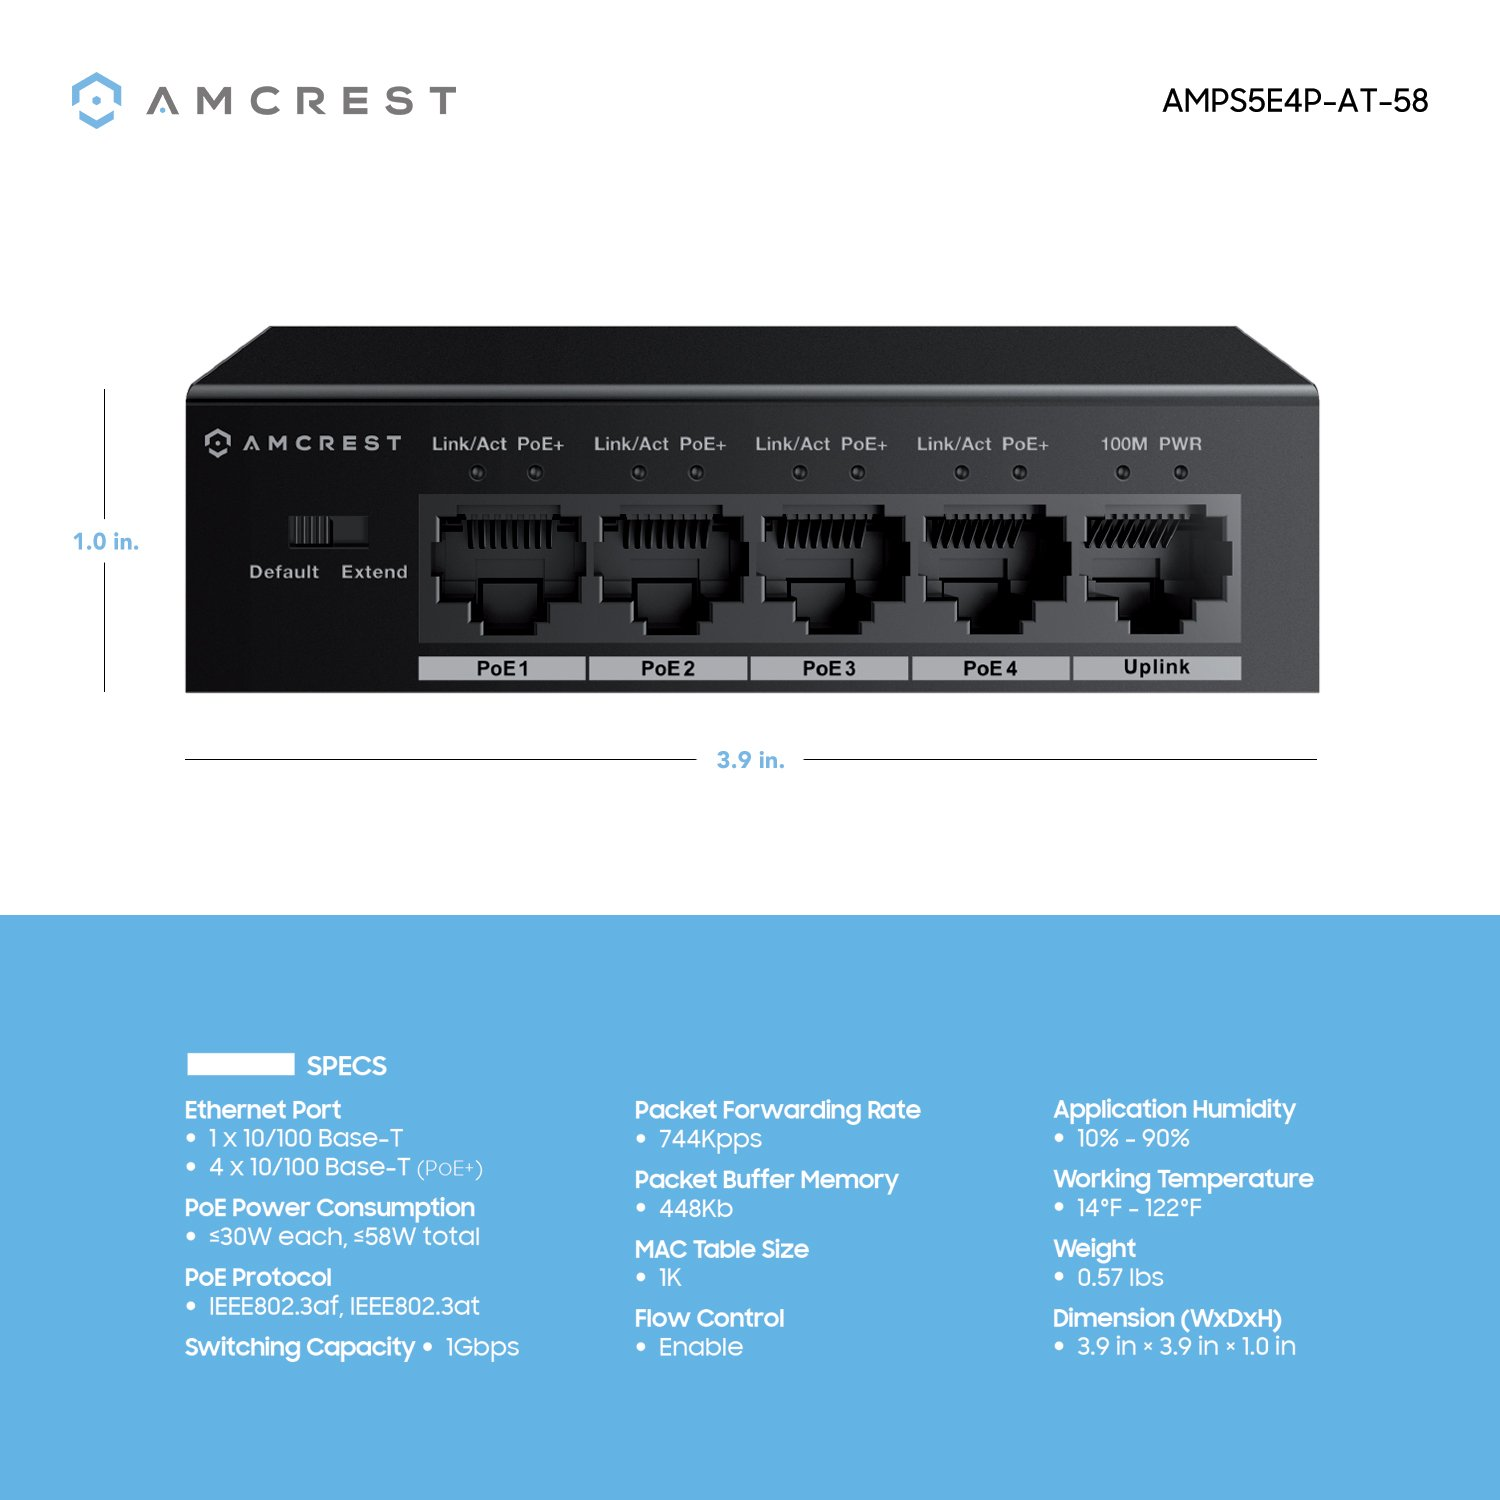 Amcrest 5-Port POE+ Switch with Metal Housing, 4-Ports POE+ Power Over Ethernet Plus 802.3at 58w (AMPS5E4P-AT-58) by Amcrest (Image #4)